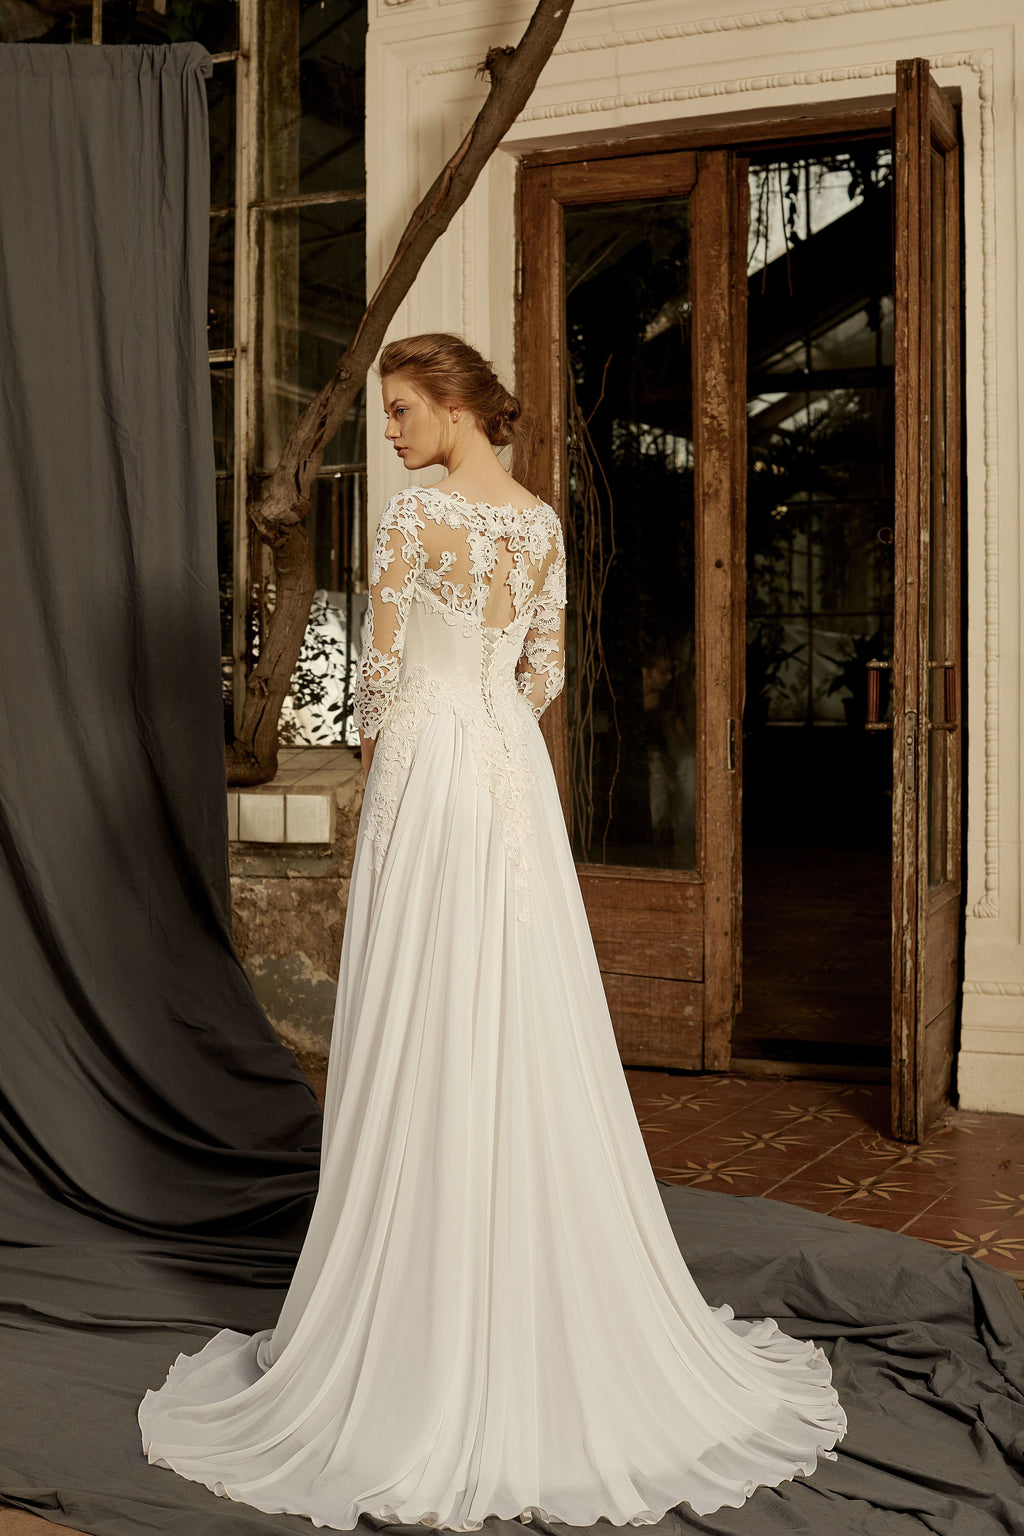 This elegant sheath gown has a sweetheart neckline and long sleeves decorated with intricate lace.